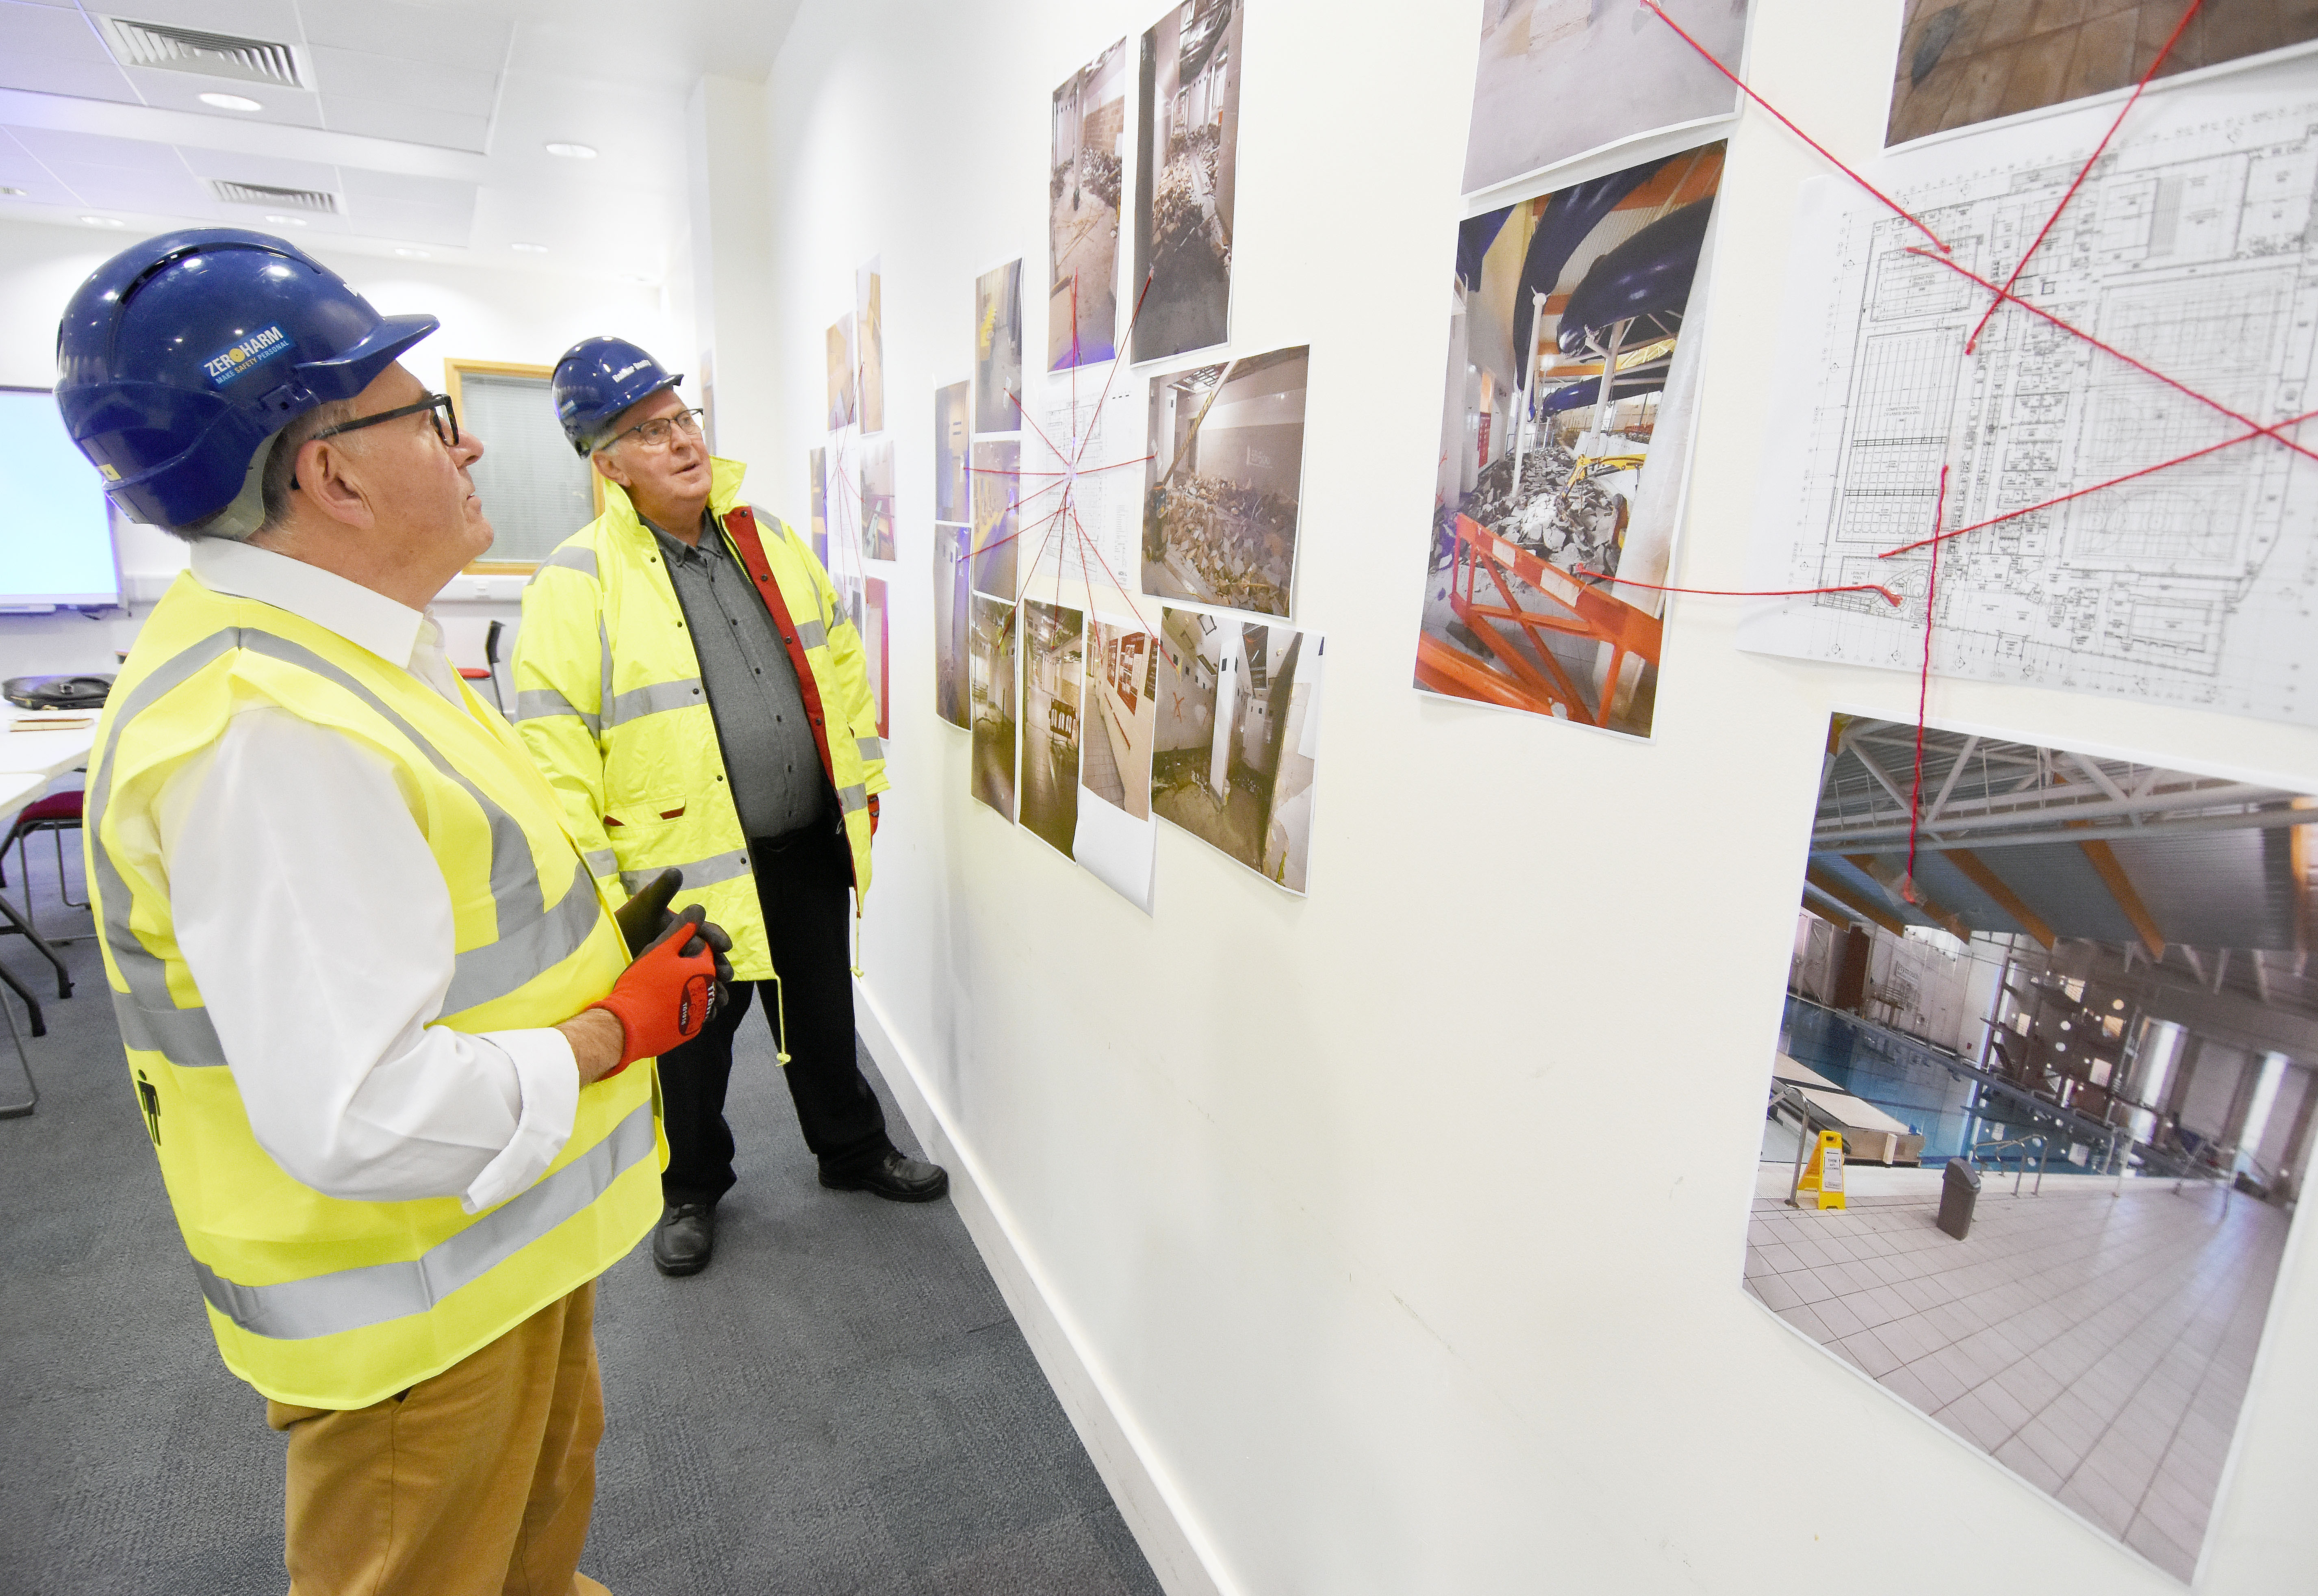 Councillor Pete Smith and Tudor Evans looking at the designs